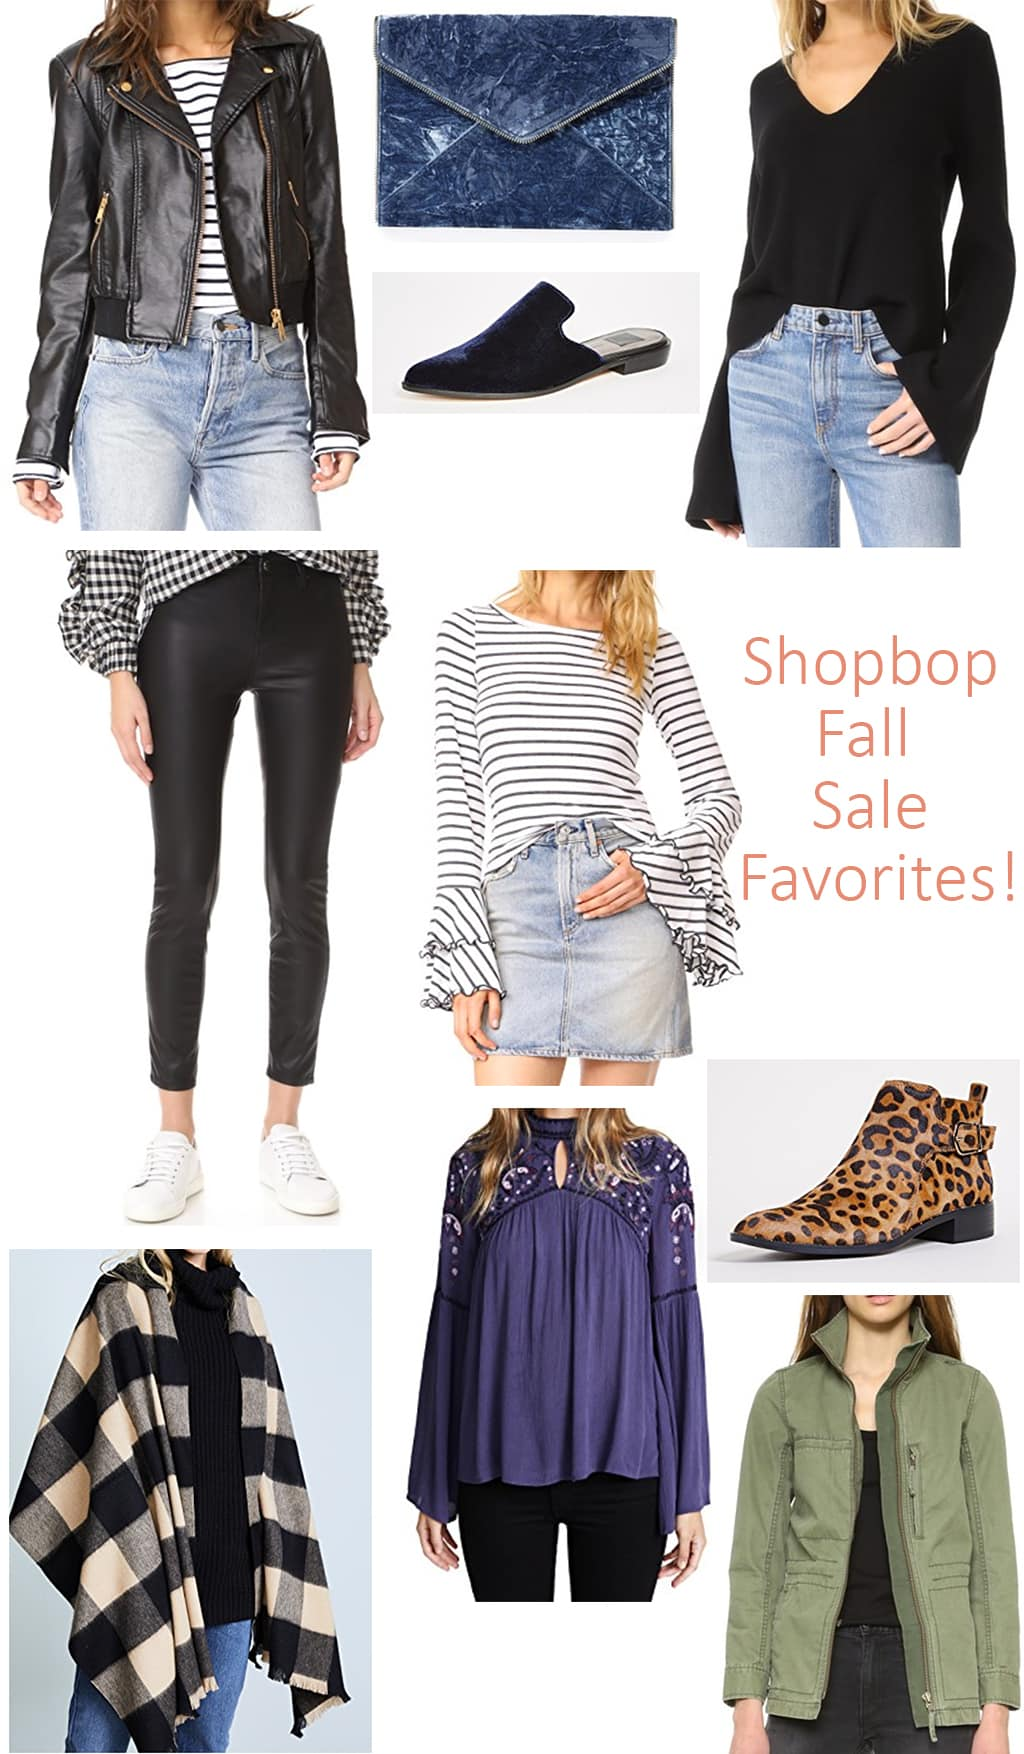 Shopbop Fall Must Haves